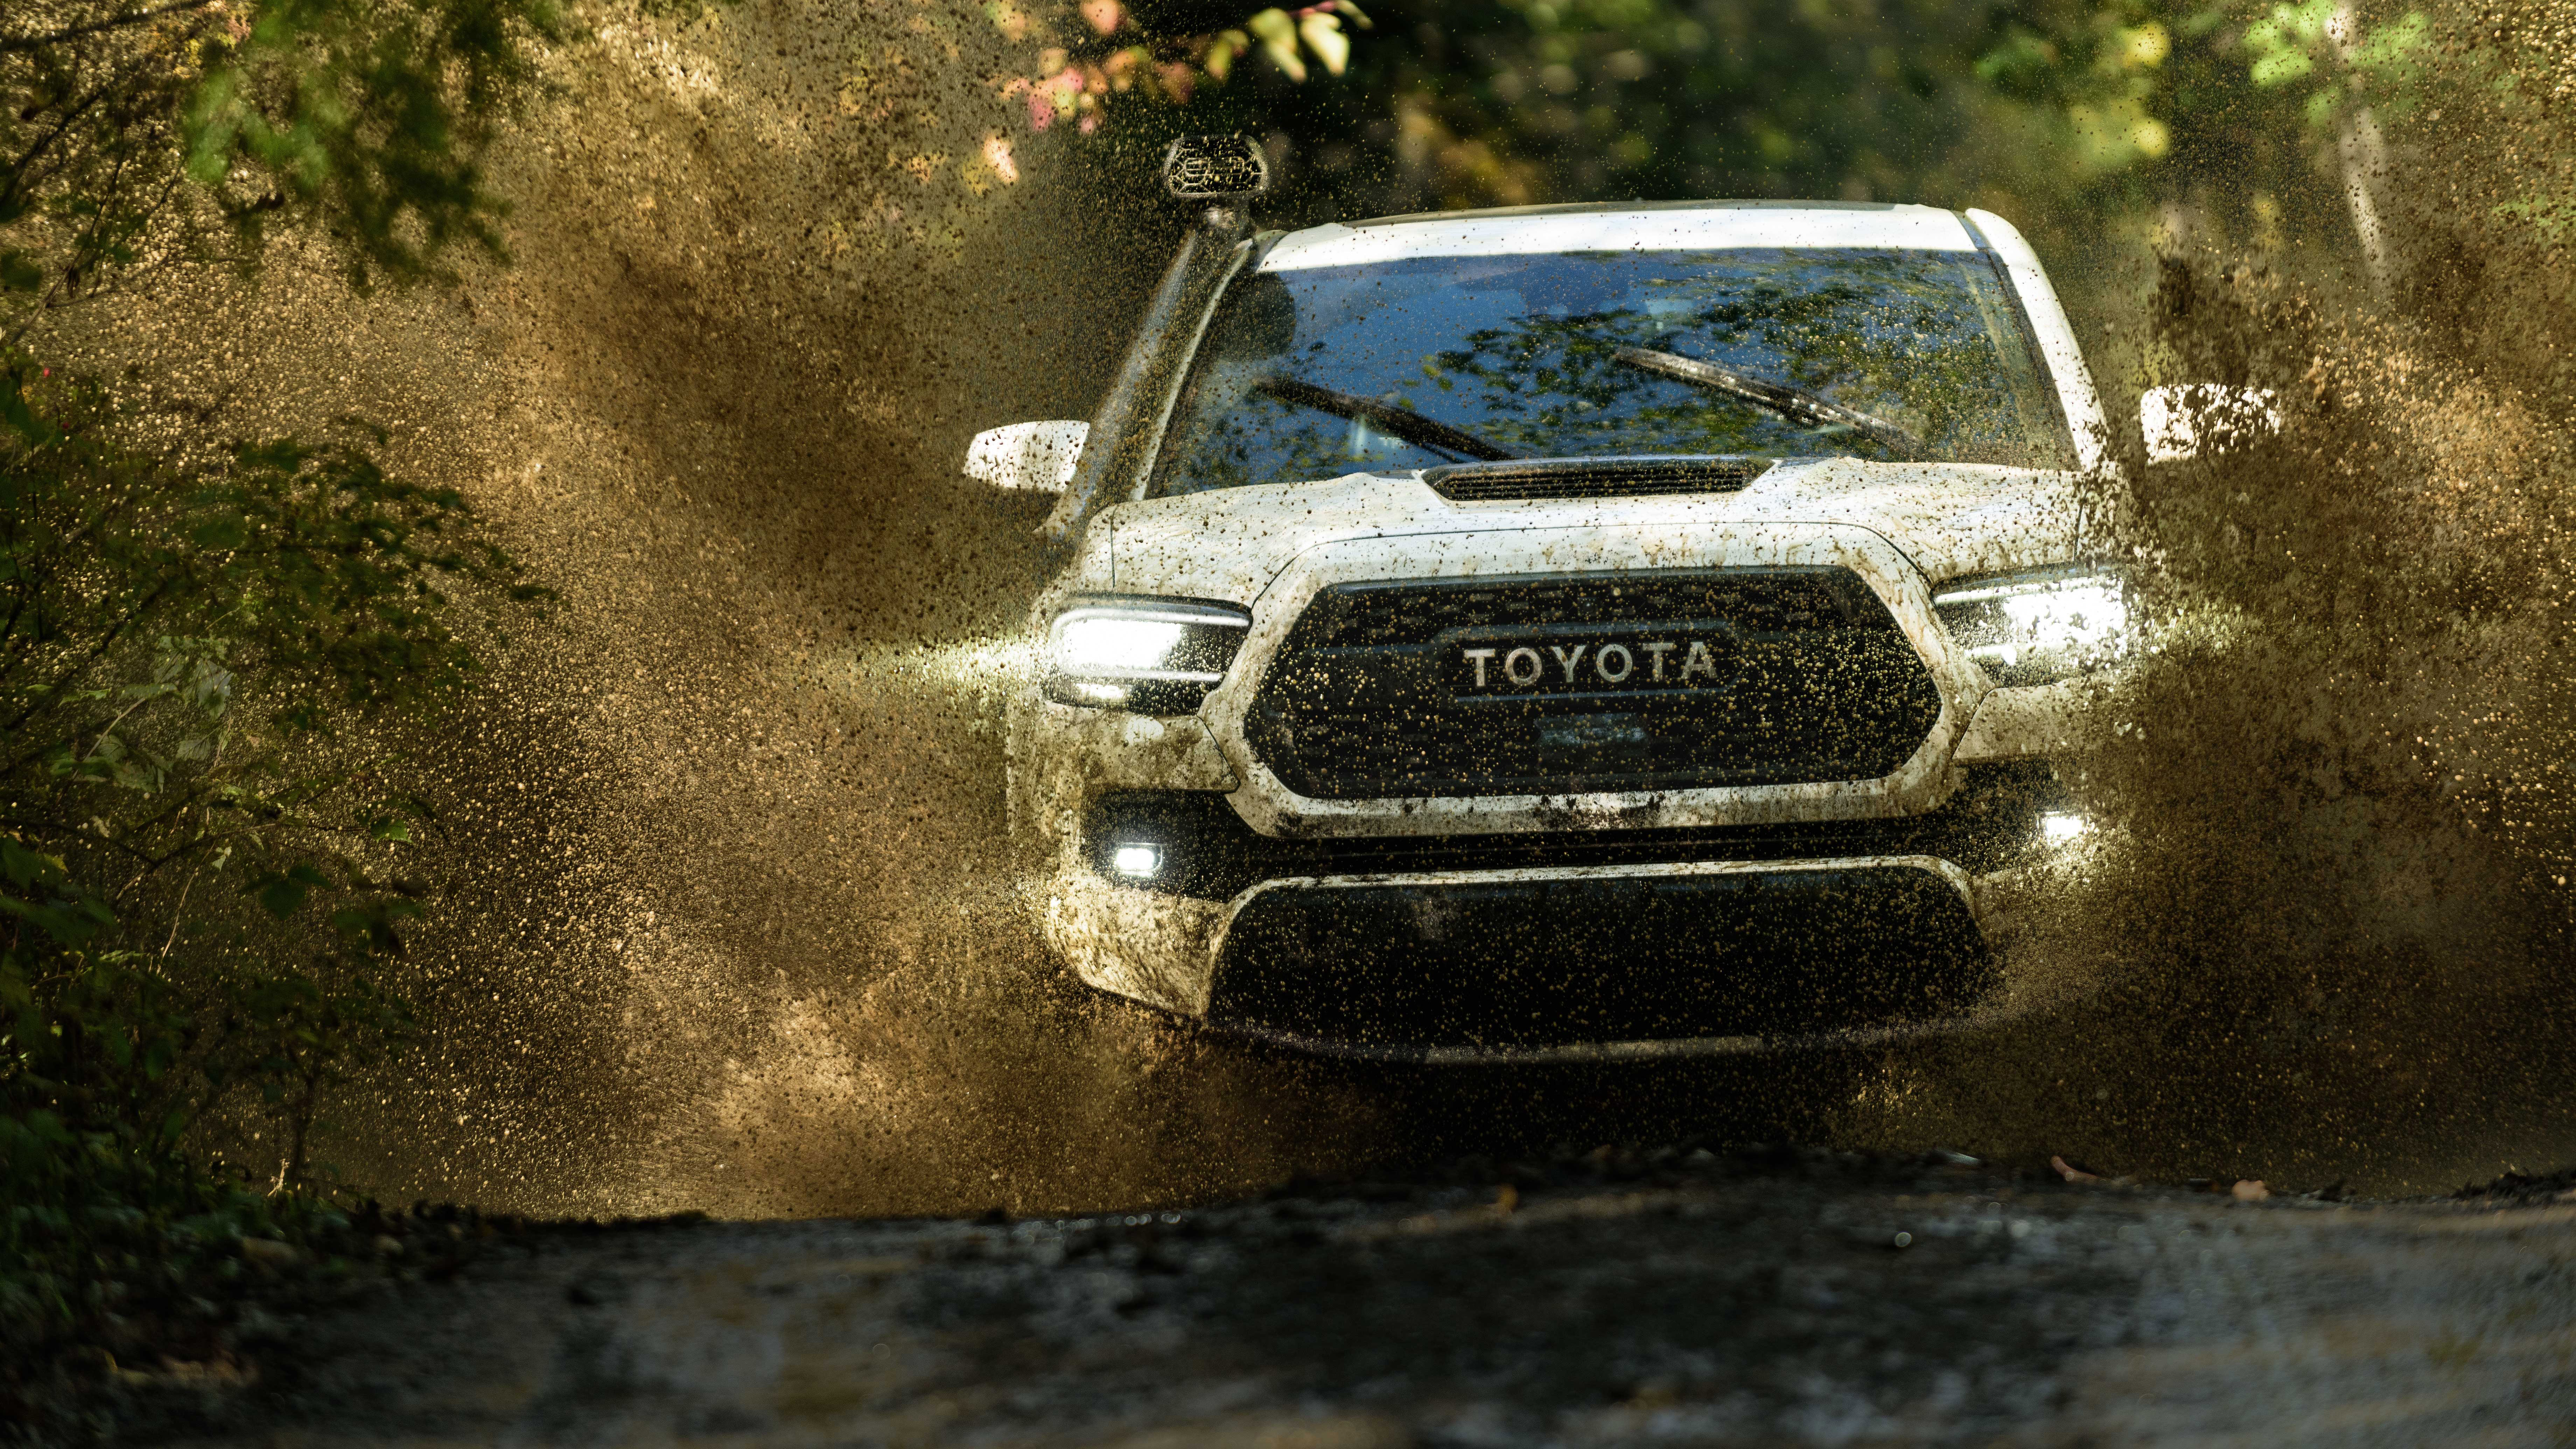 2020 Toyota Tacoma Trd Pro Double Cab 4k 8k Wallpaper Hd Car Wallpapers Id 11989